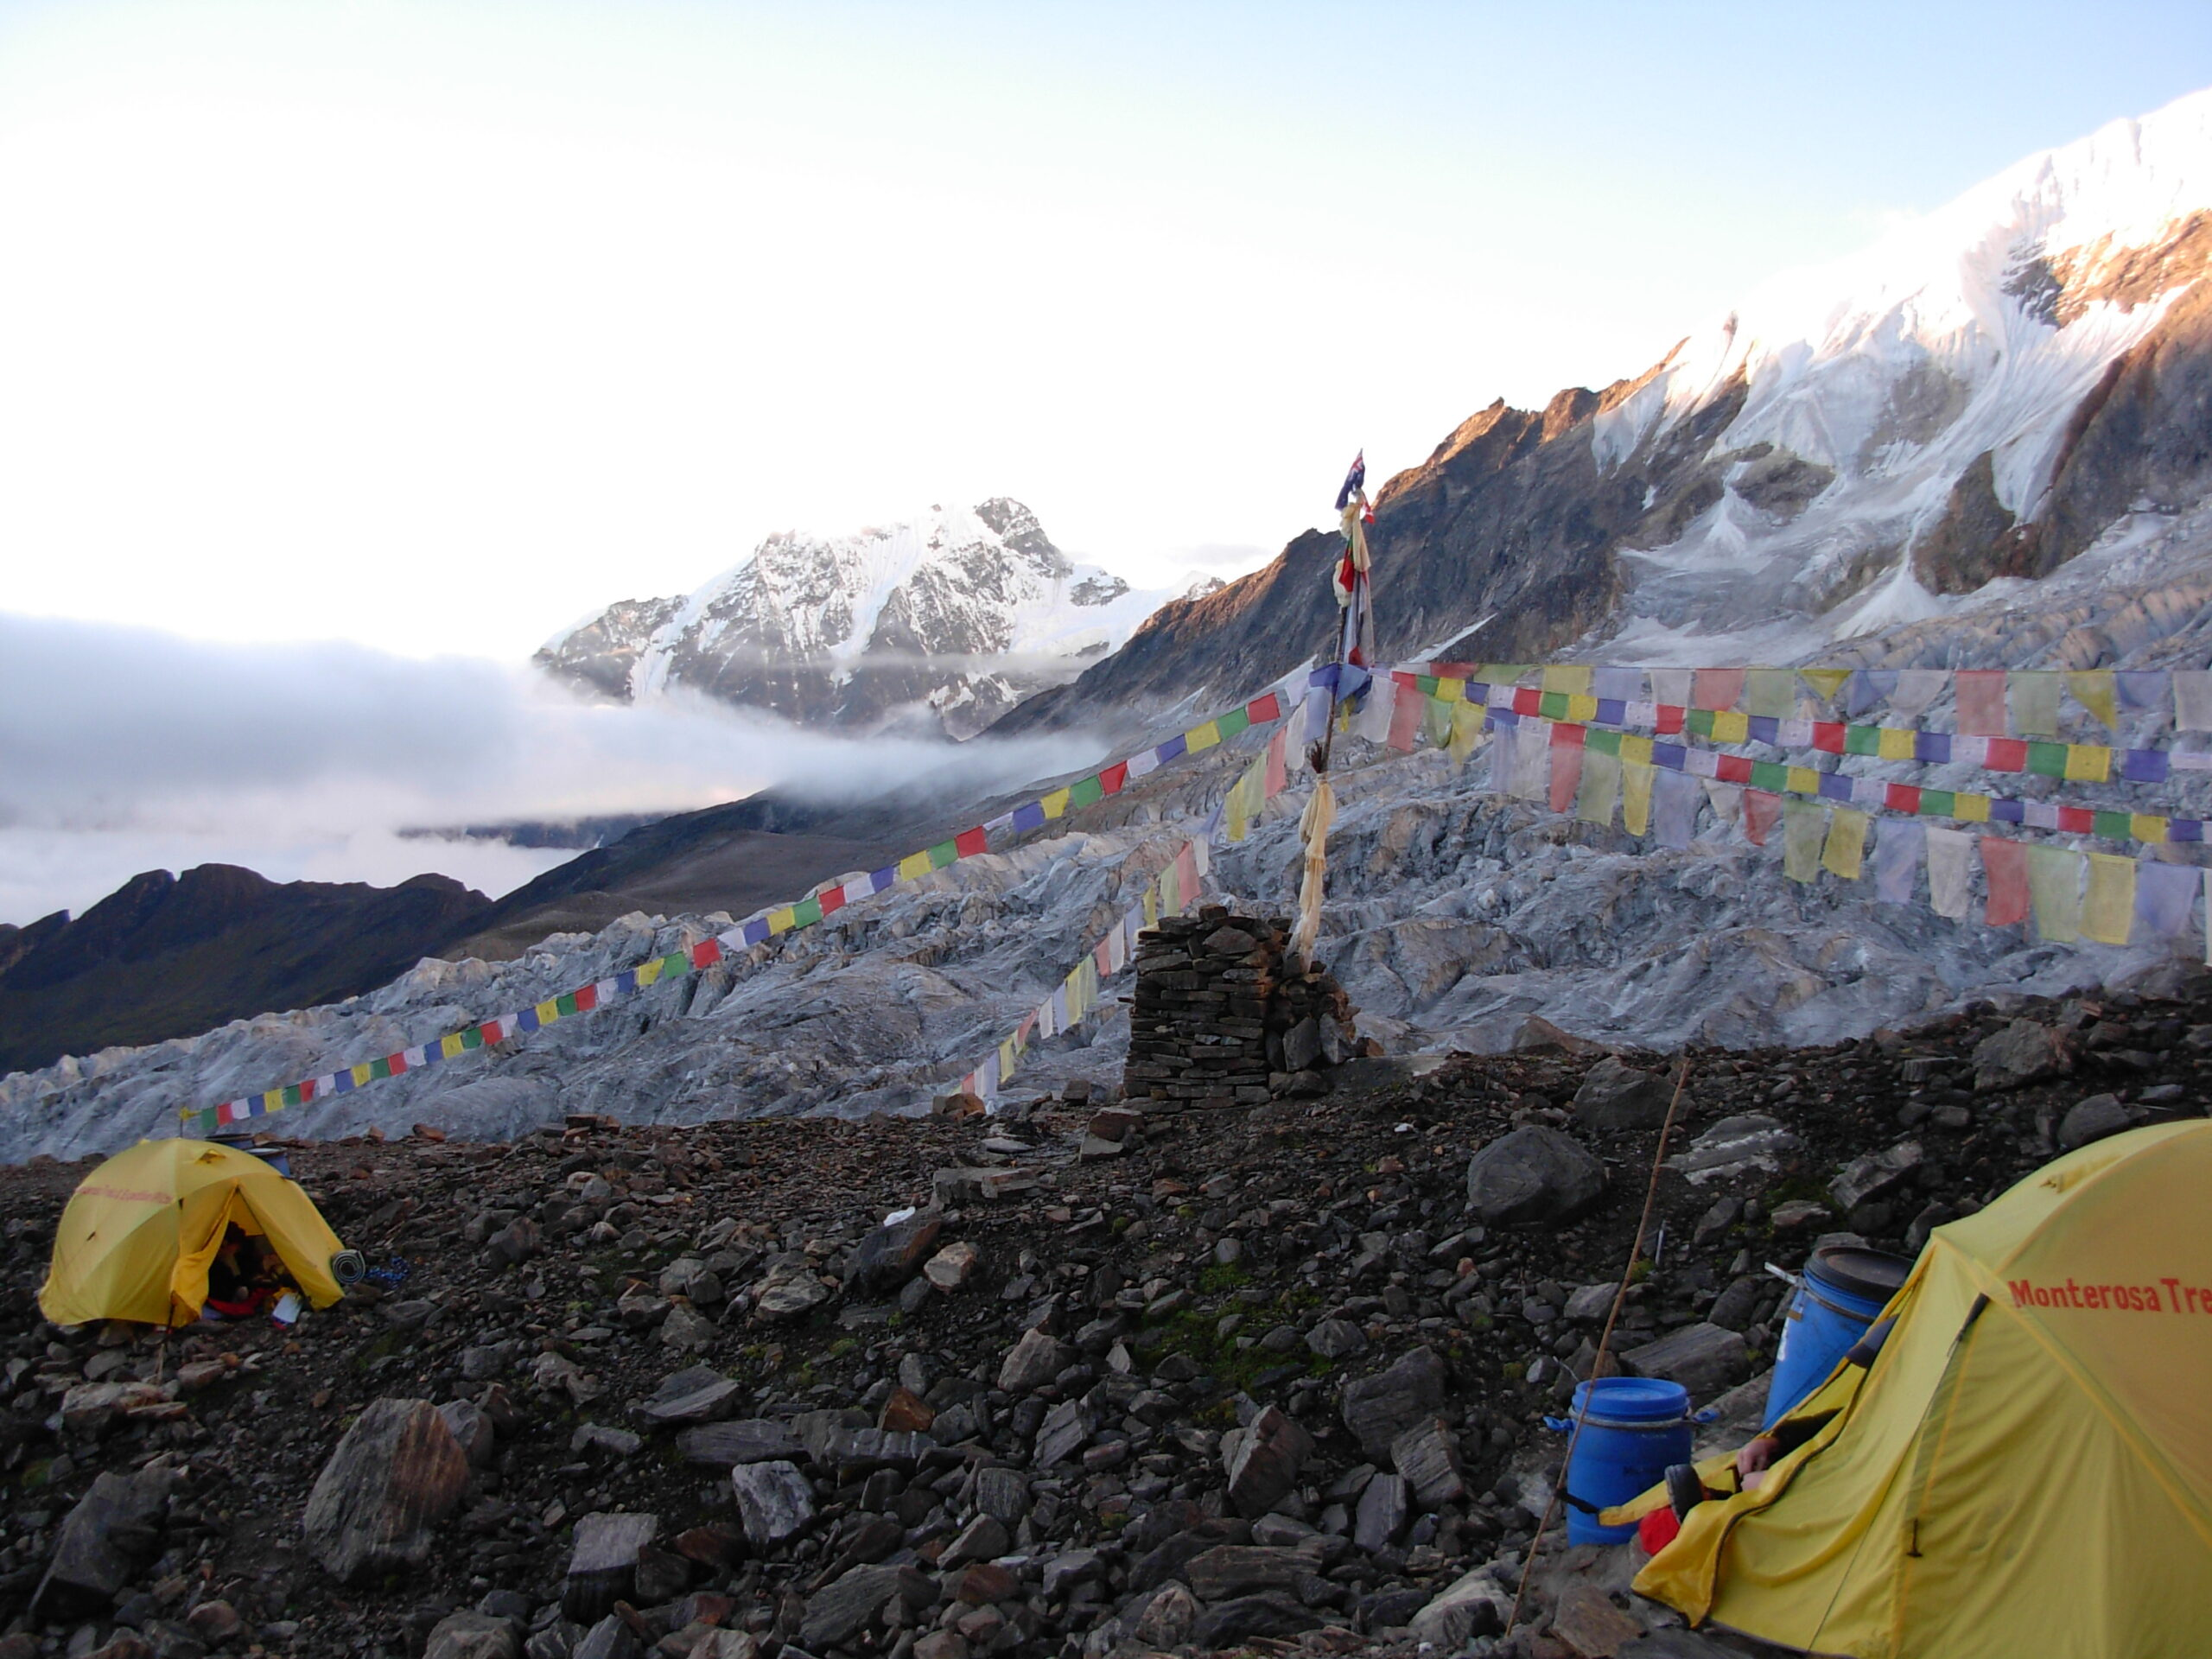 Everest Base Camp with prayer flags